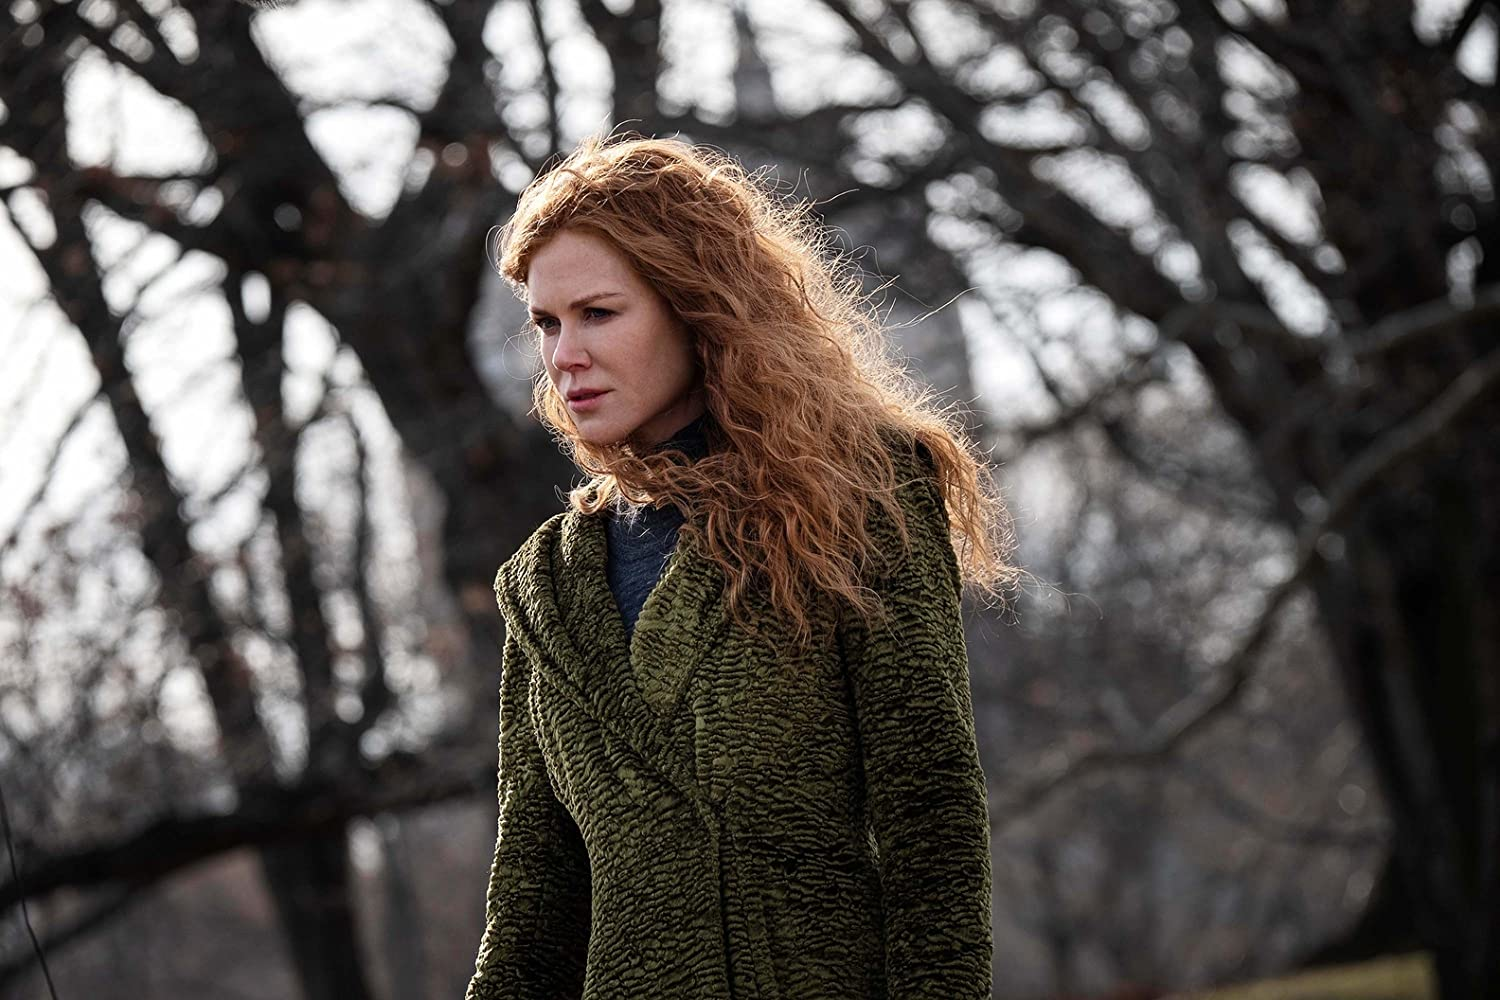 Nicole Kidman in The Undoing (2020)